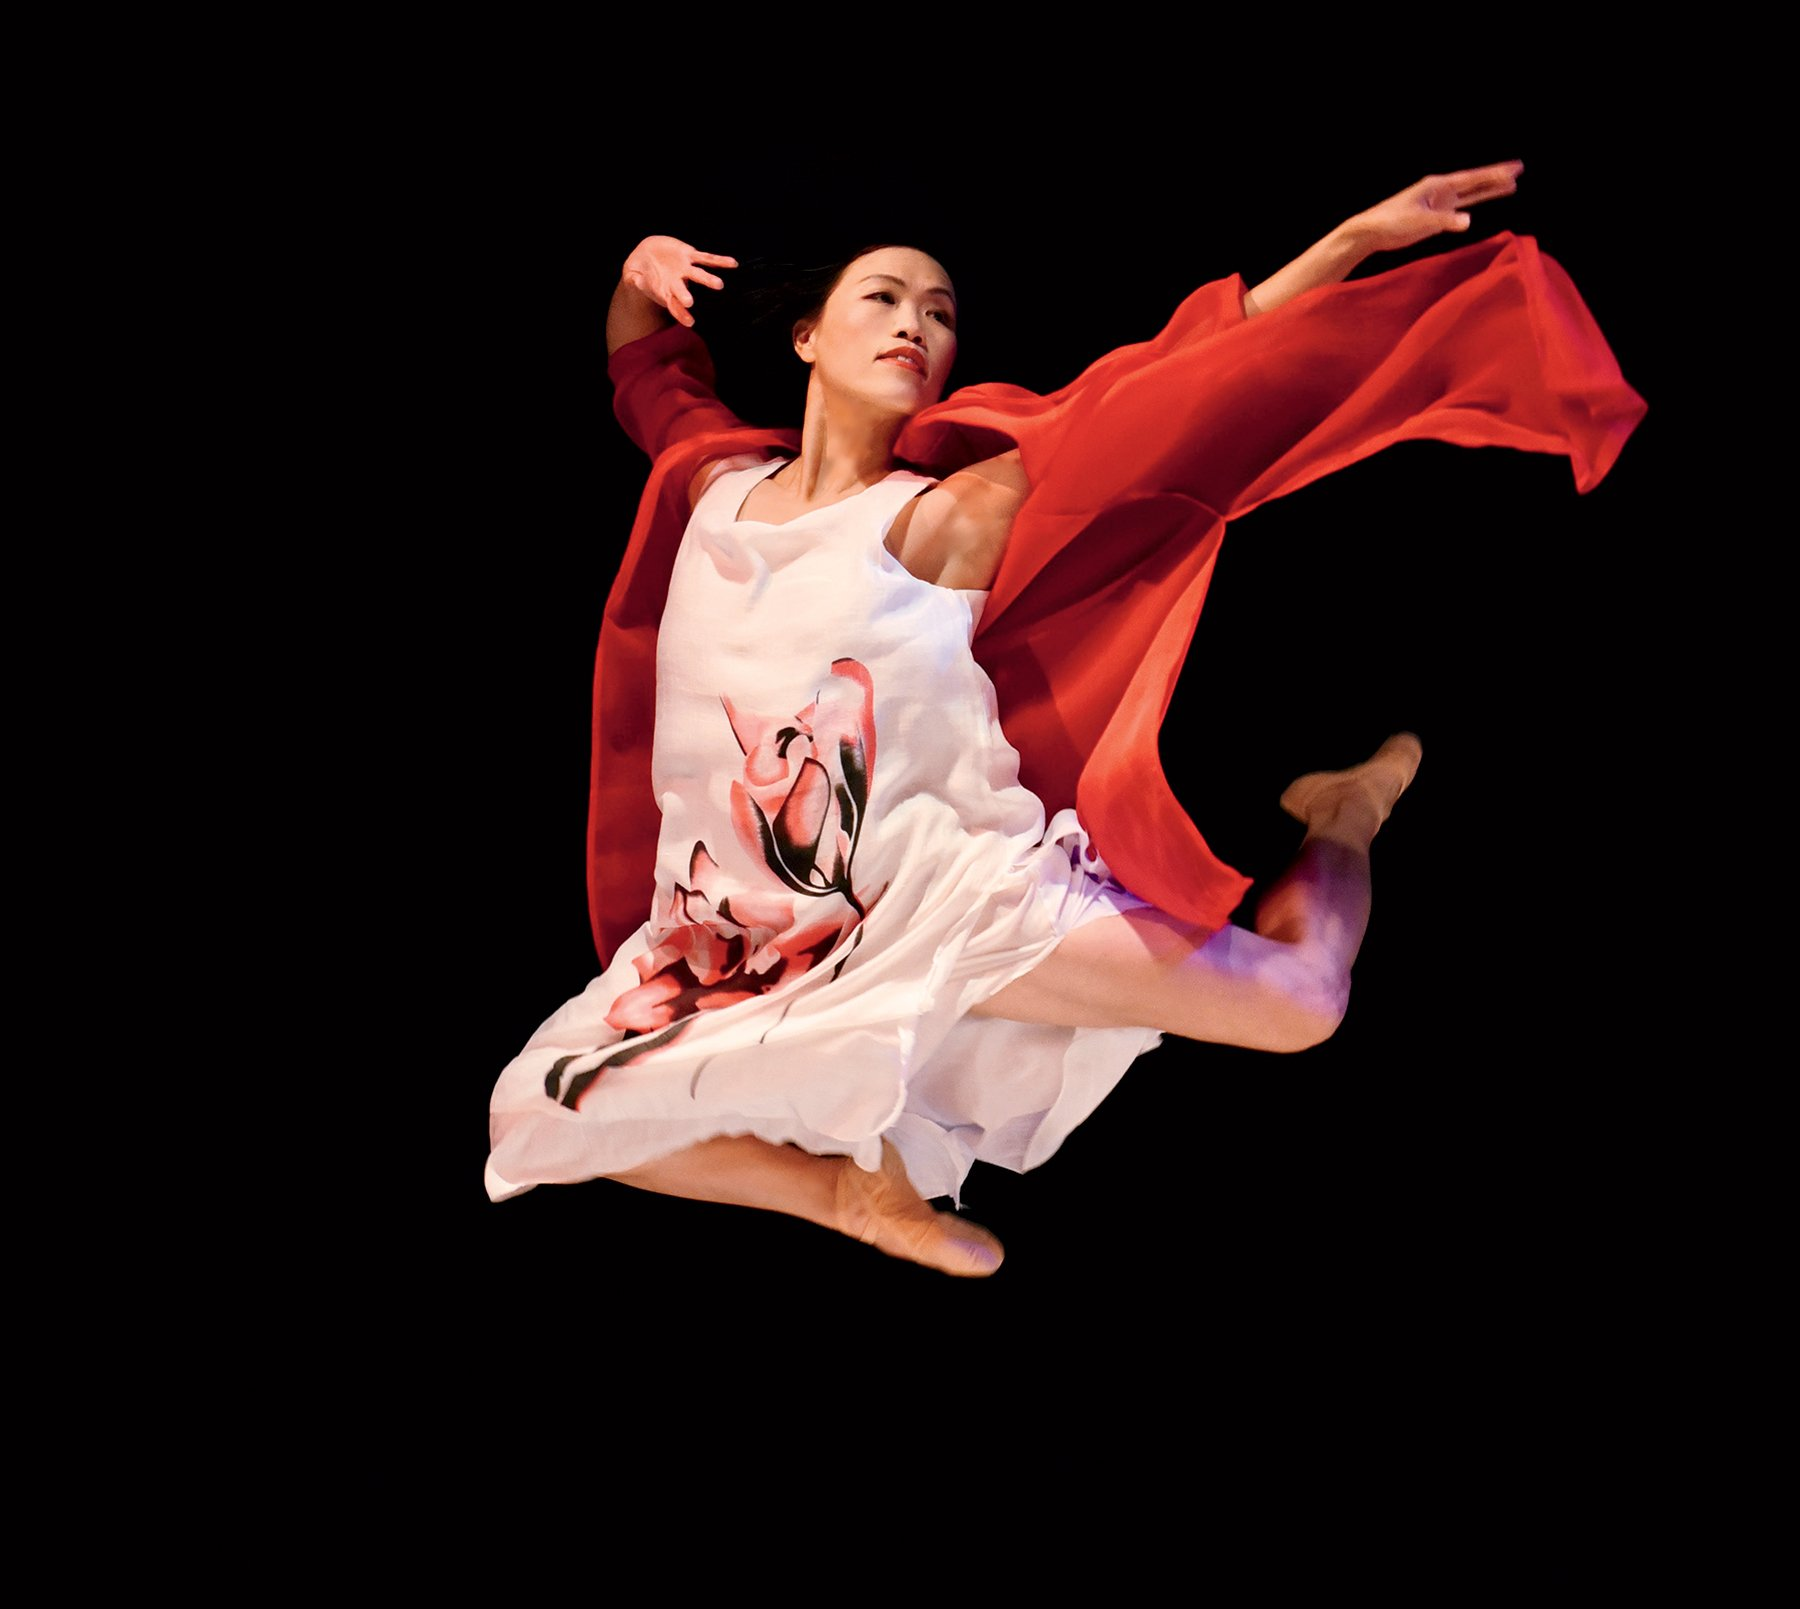 Things to do around DC this February. Shu-Chen Cuff of Gin Dance Company. Photograph courtesy of Intersections Festival.